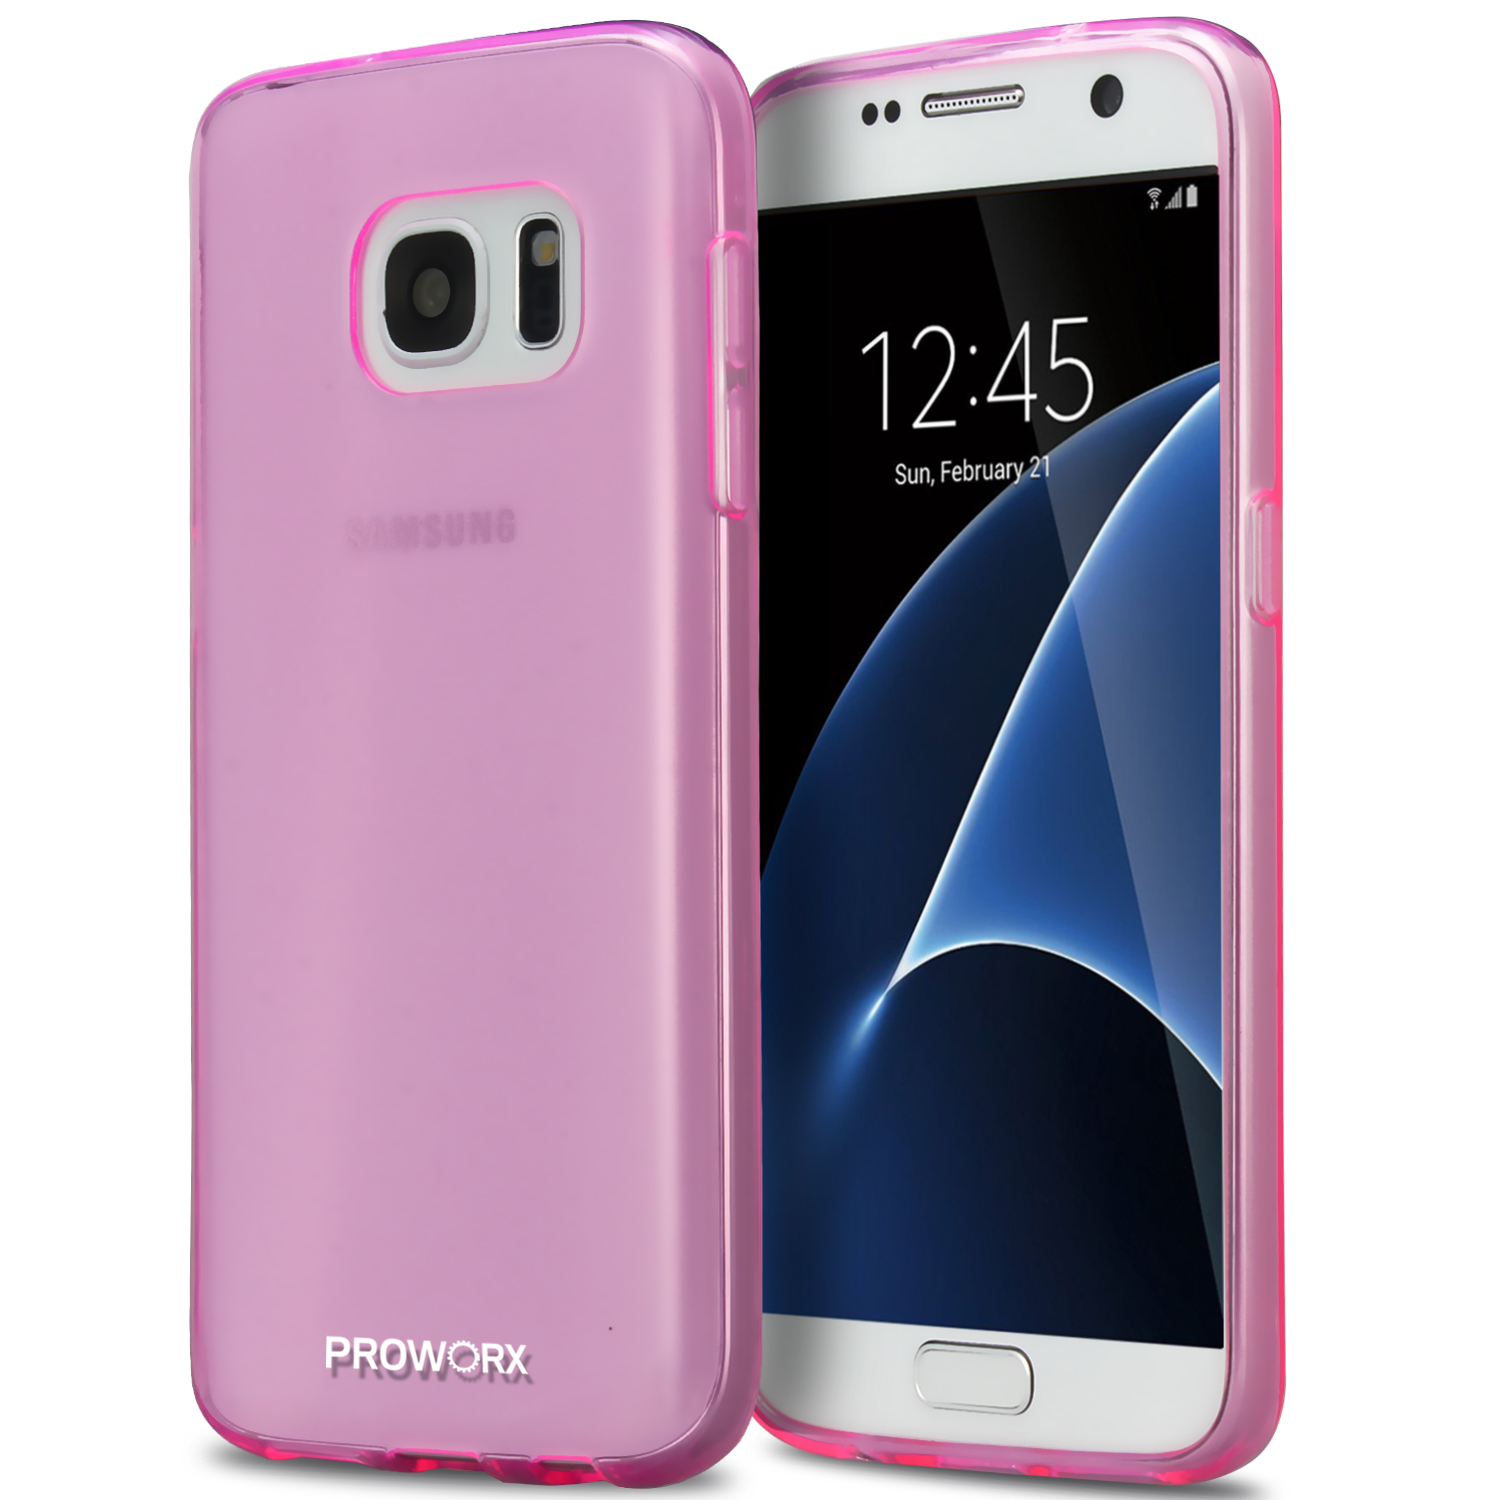 Samsung Galaxy S7 Hot Pink ProWorx Ultra Slim Thin Scratch Resistant TPU Silicone Case Cover